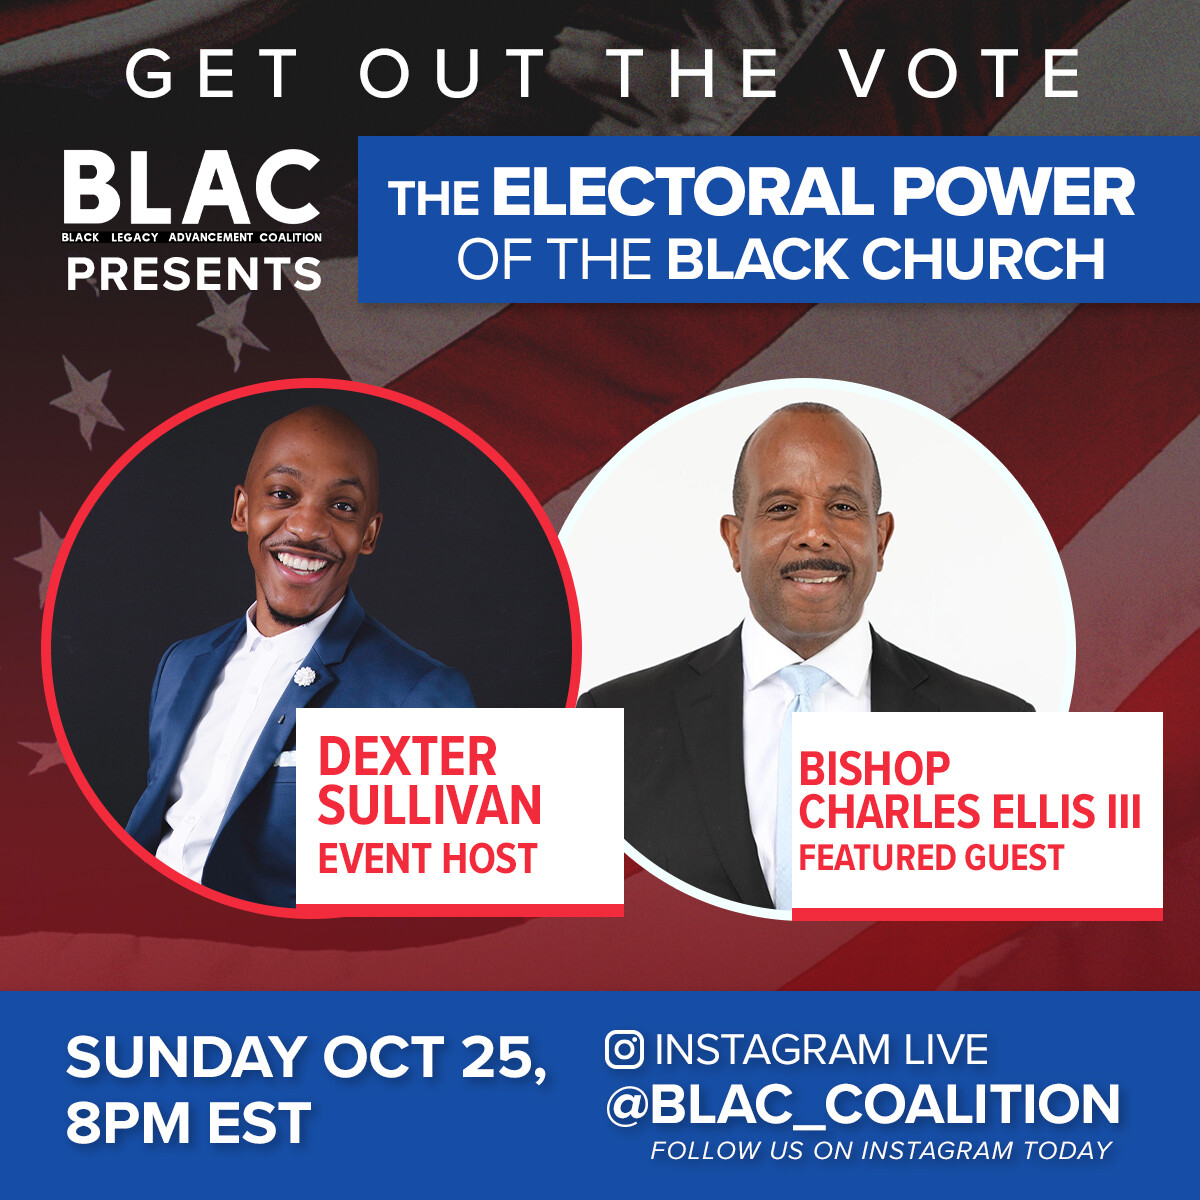 Get Out the Vote: The Electoral Power of the Black Church